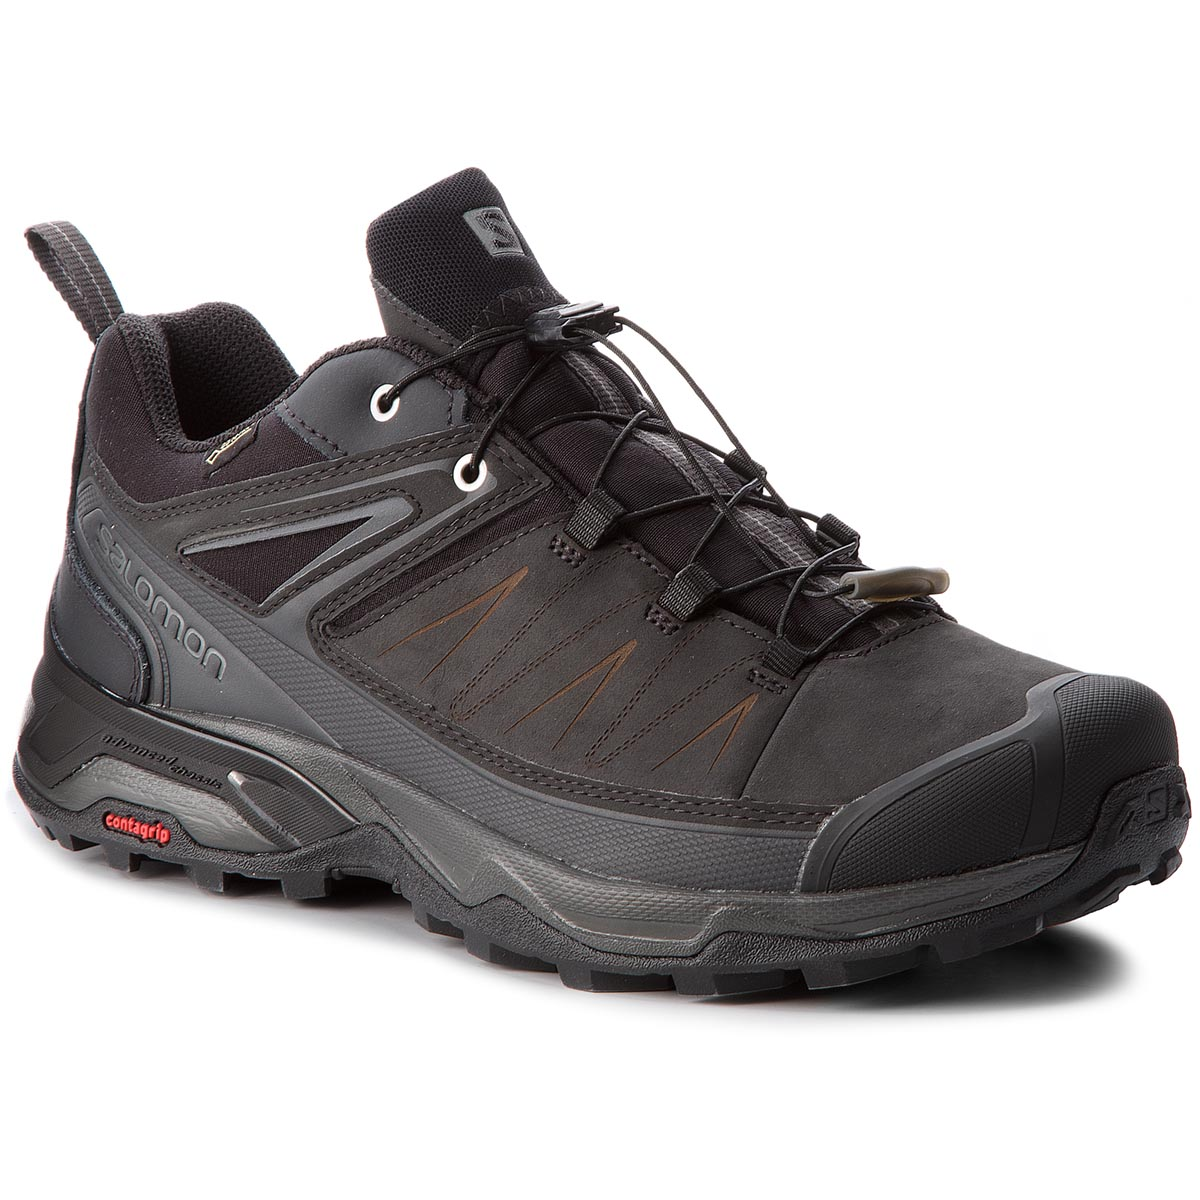 Trekkings Salomon - X Ultra 3 Ltr Gtx Gore-Tex 404784 30 V0 Phantom/Magnet/Quiet Shade imagine epantofi.ro 2021